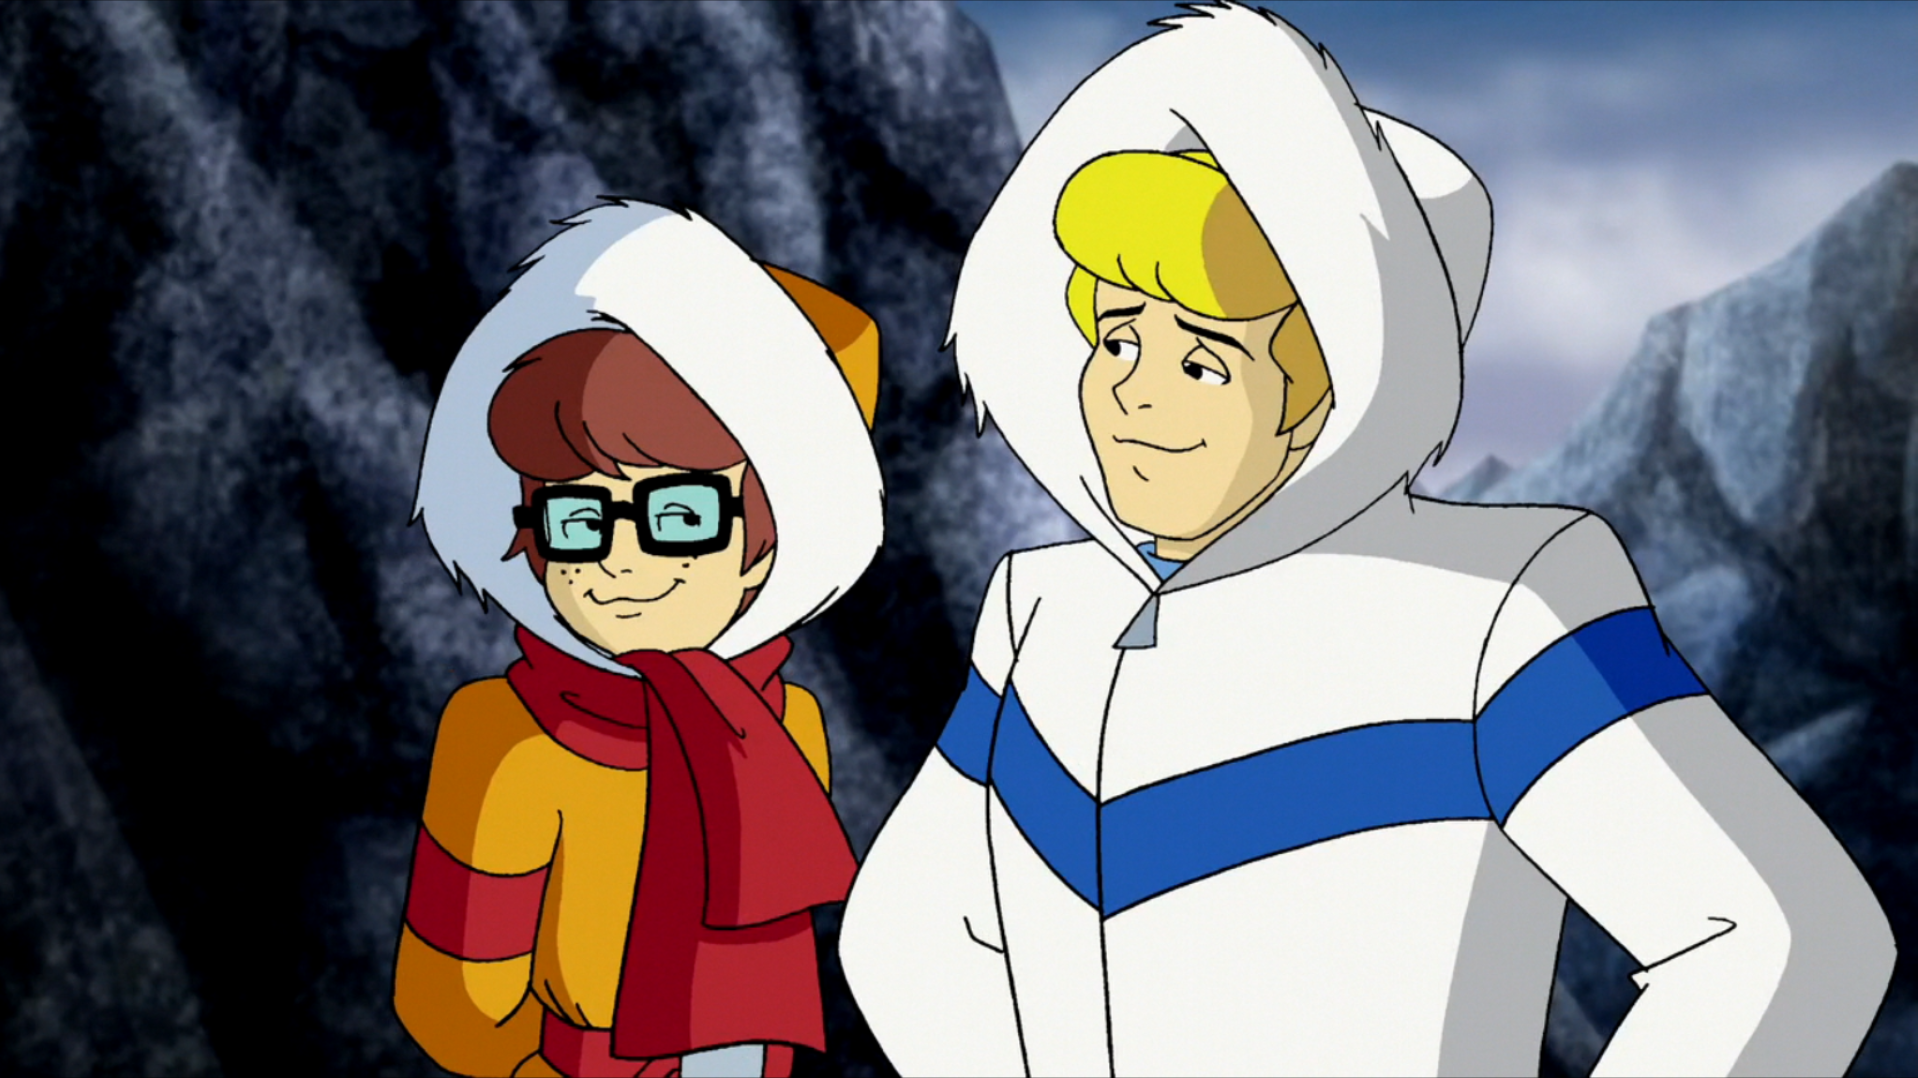 velma and fred relationship help